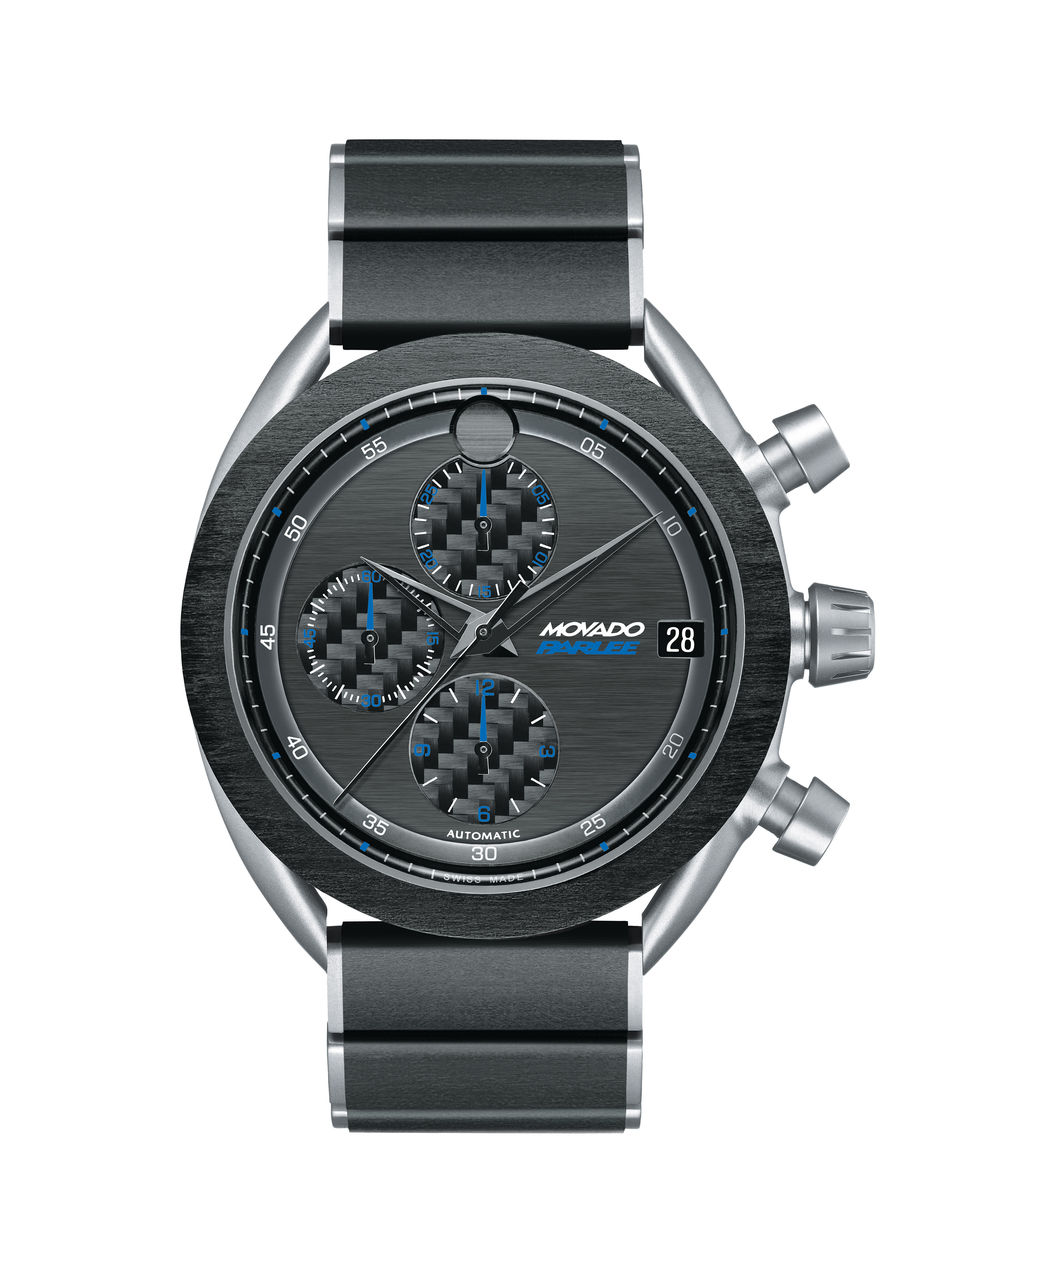 Photo via Movado.com